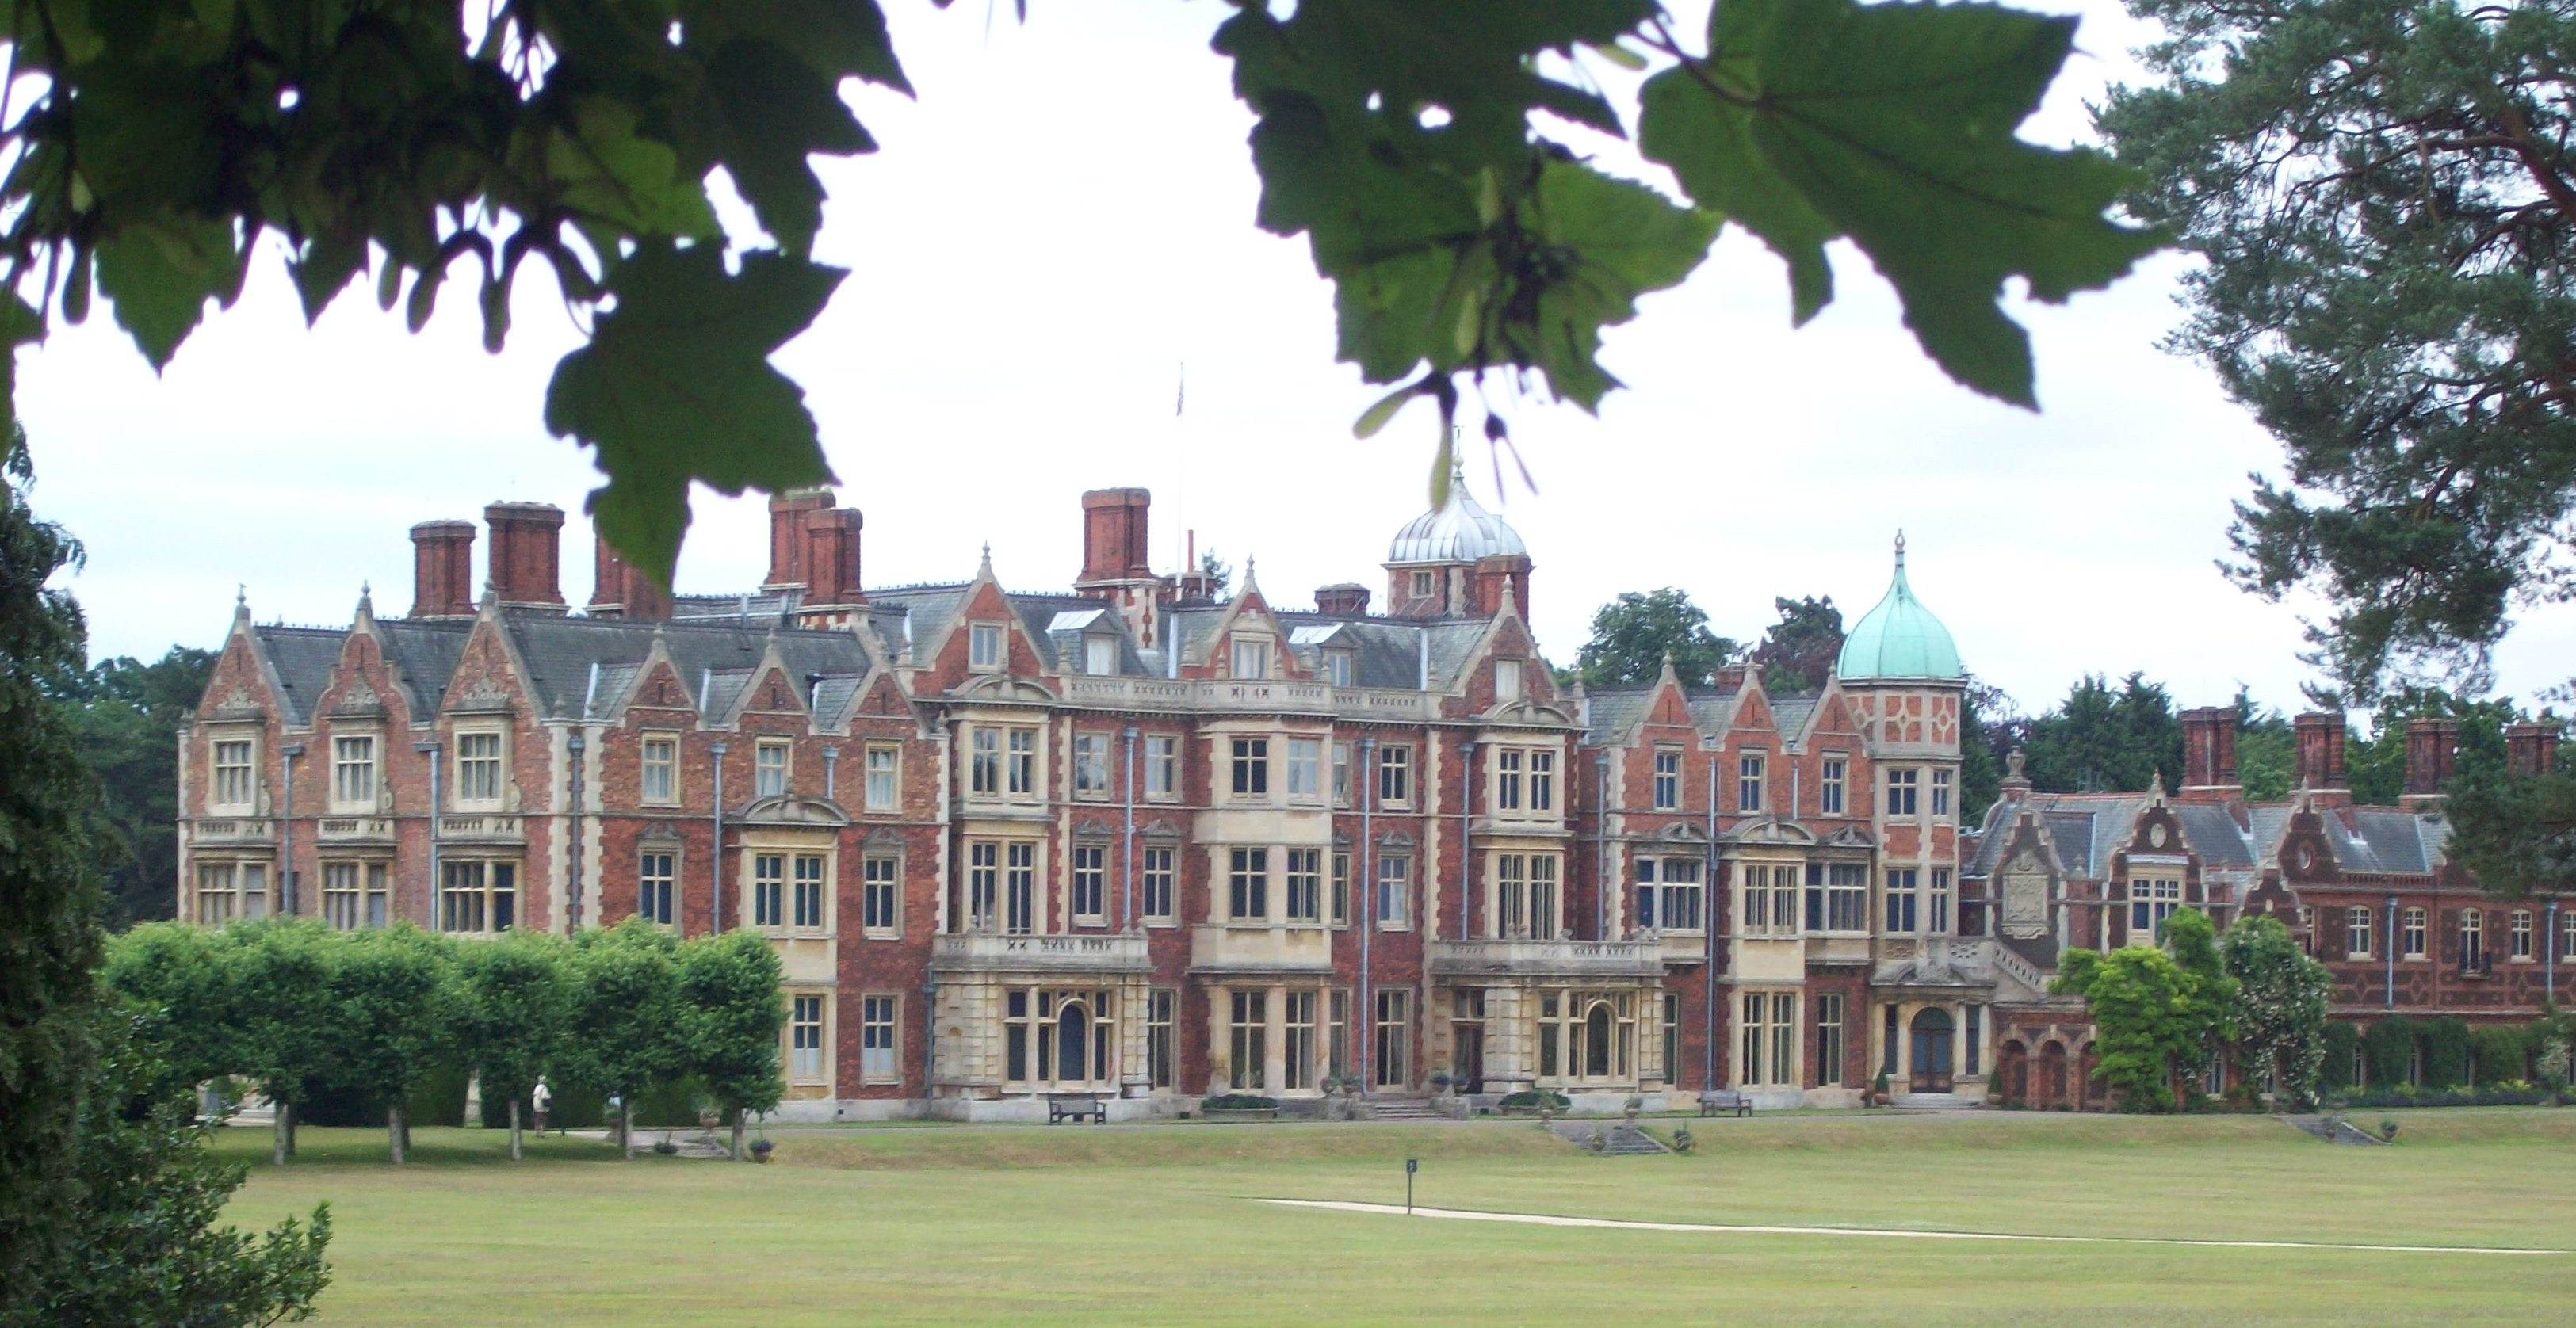 Sandringham house the home of her majesty the queen